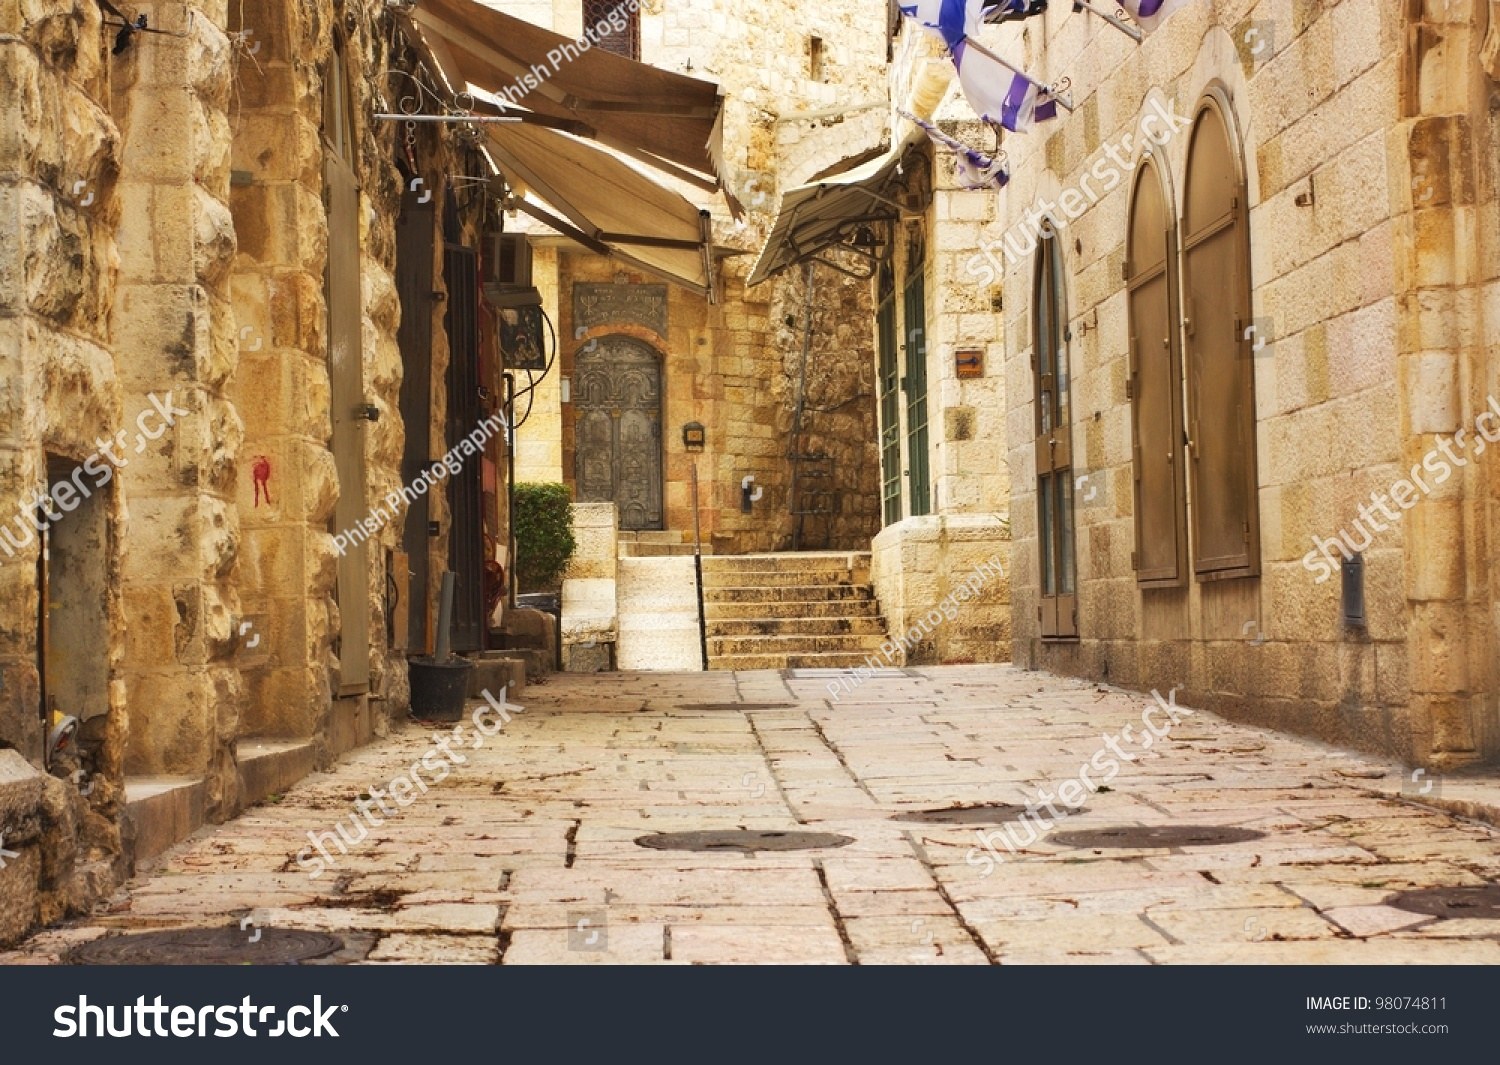 Phish Hd Wallpaper Alley Jerusalem Old City Israel Stock Photo 98074811